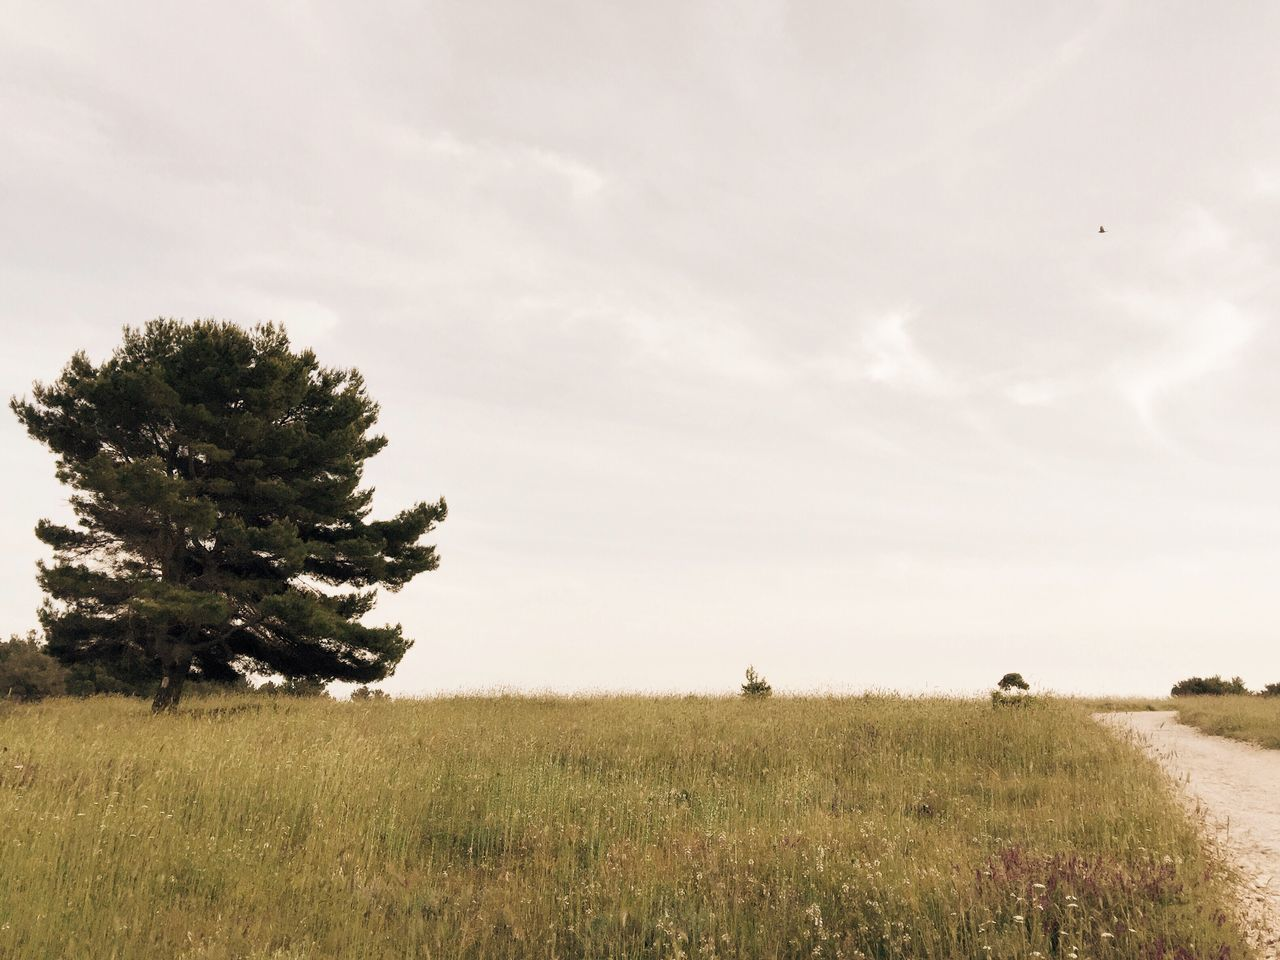 field, landscape, grass, nature, growth, tree, tranquility, tranquil scene, sky, no people, beauty in nature, scenics, day, outdoors